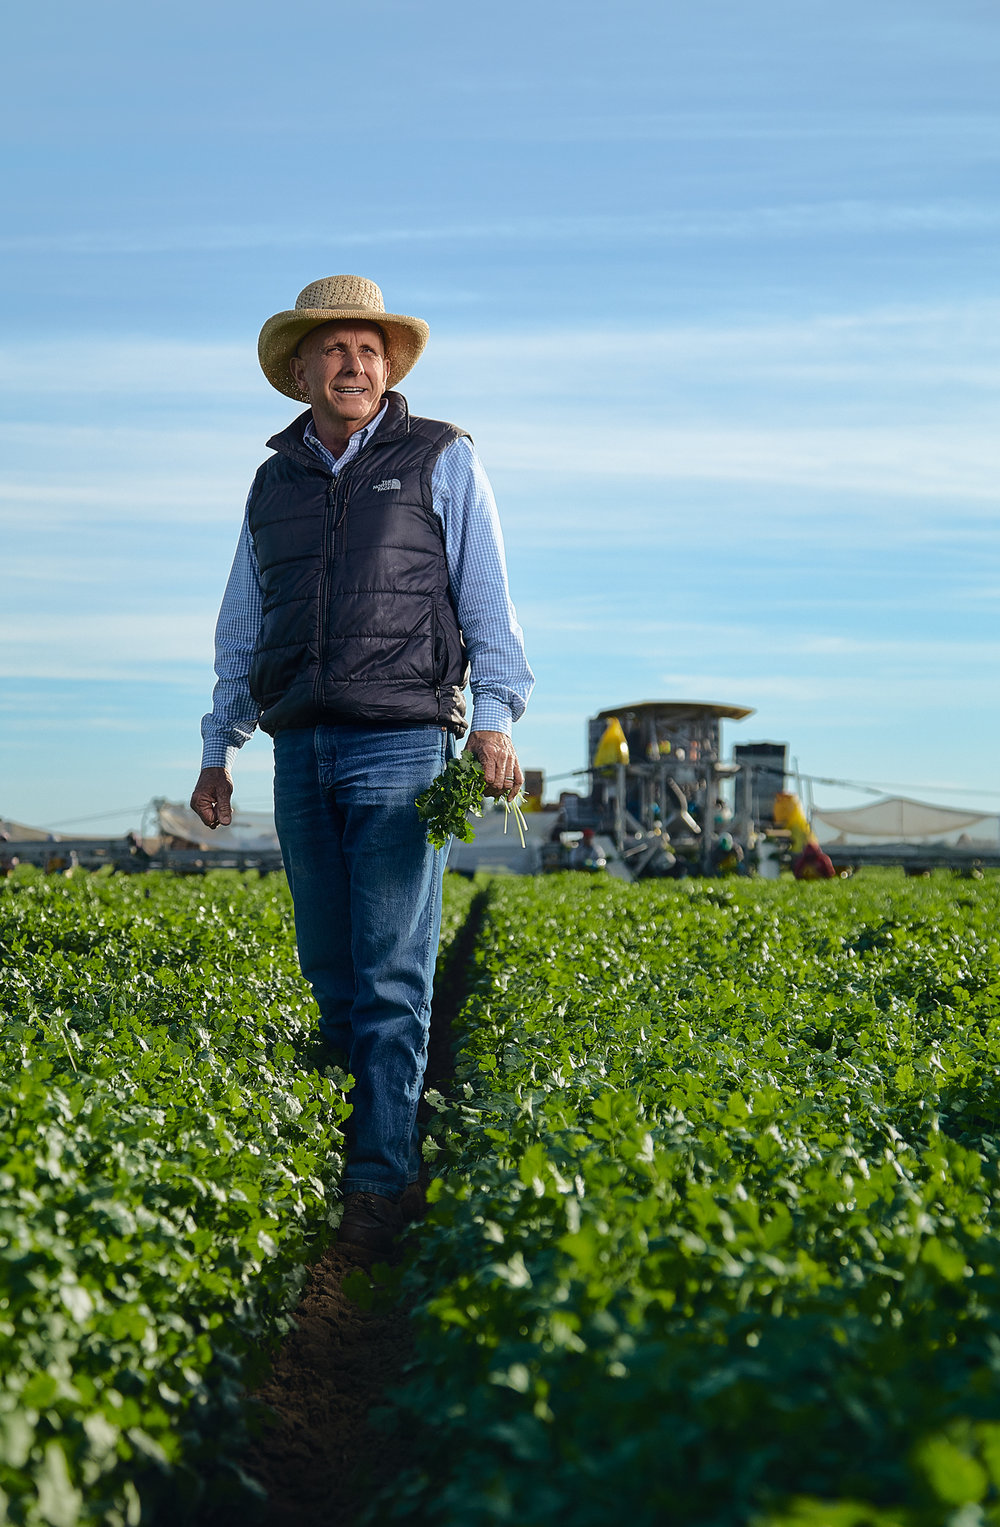 Arizona Editorial Photographer - Eatingwell Magazine Farmer